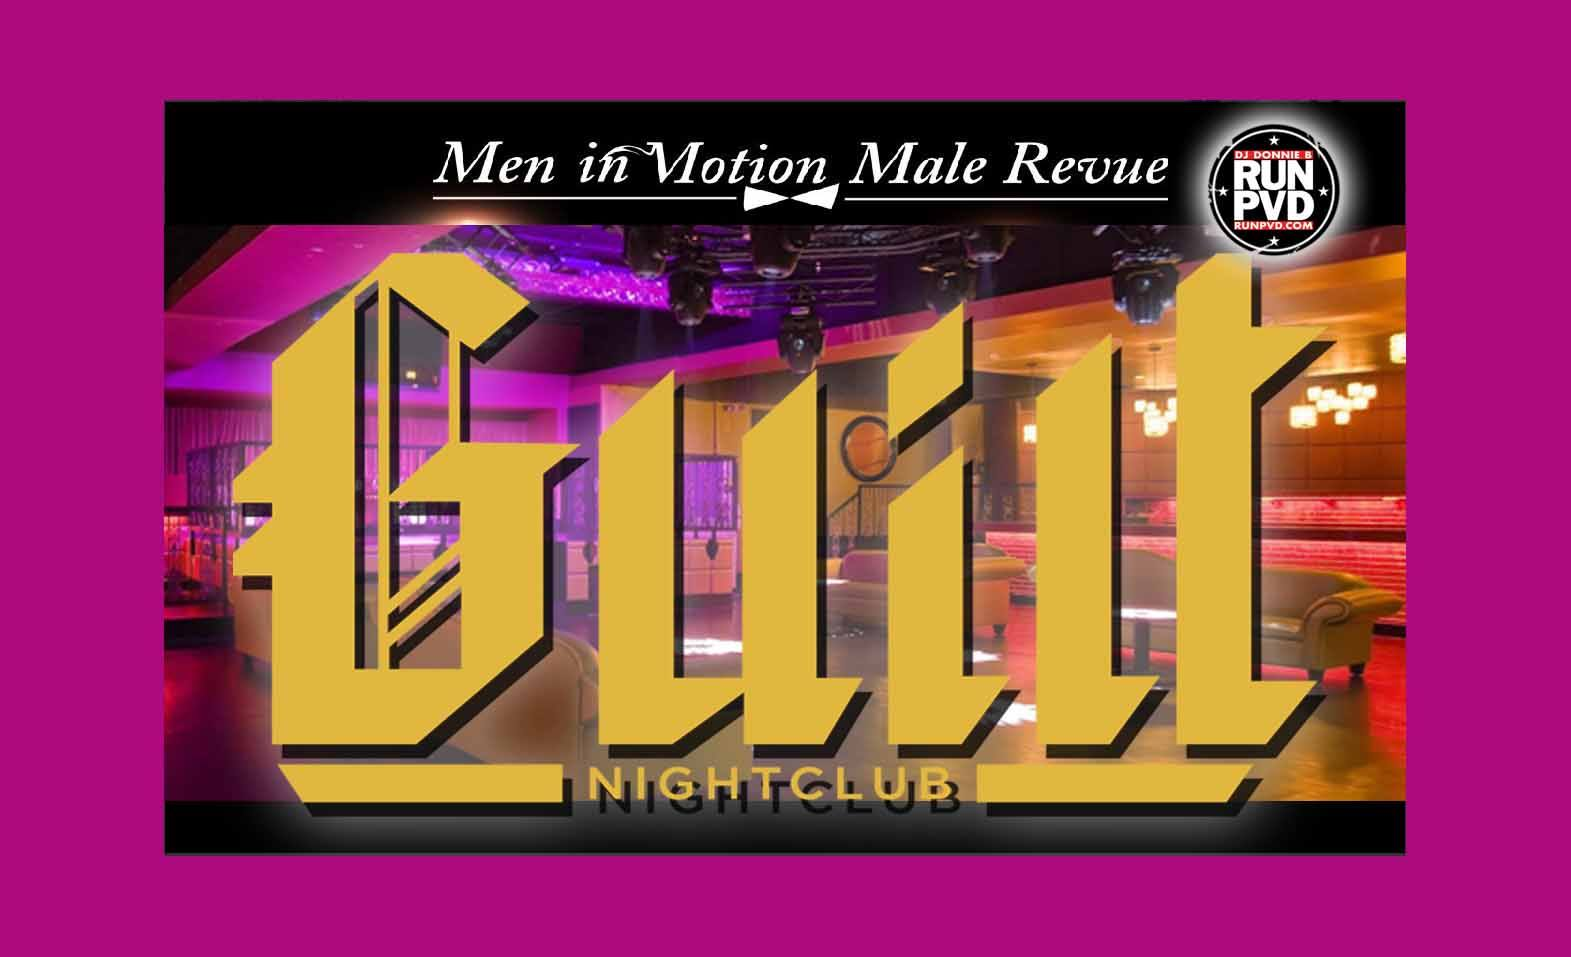 Guilt Nightclub